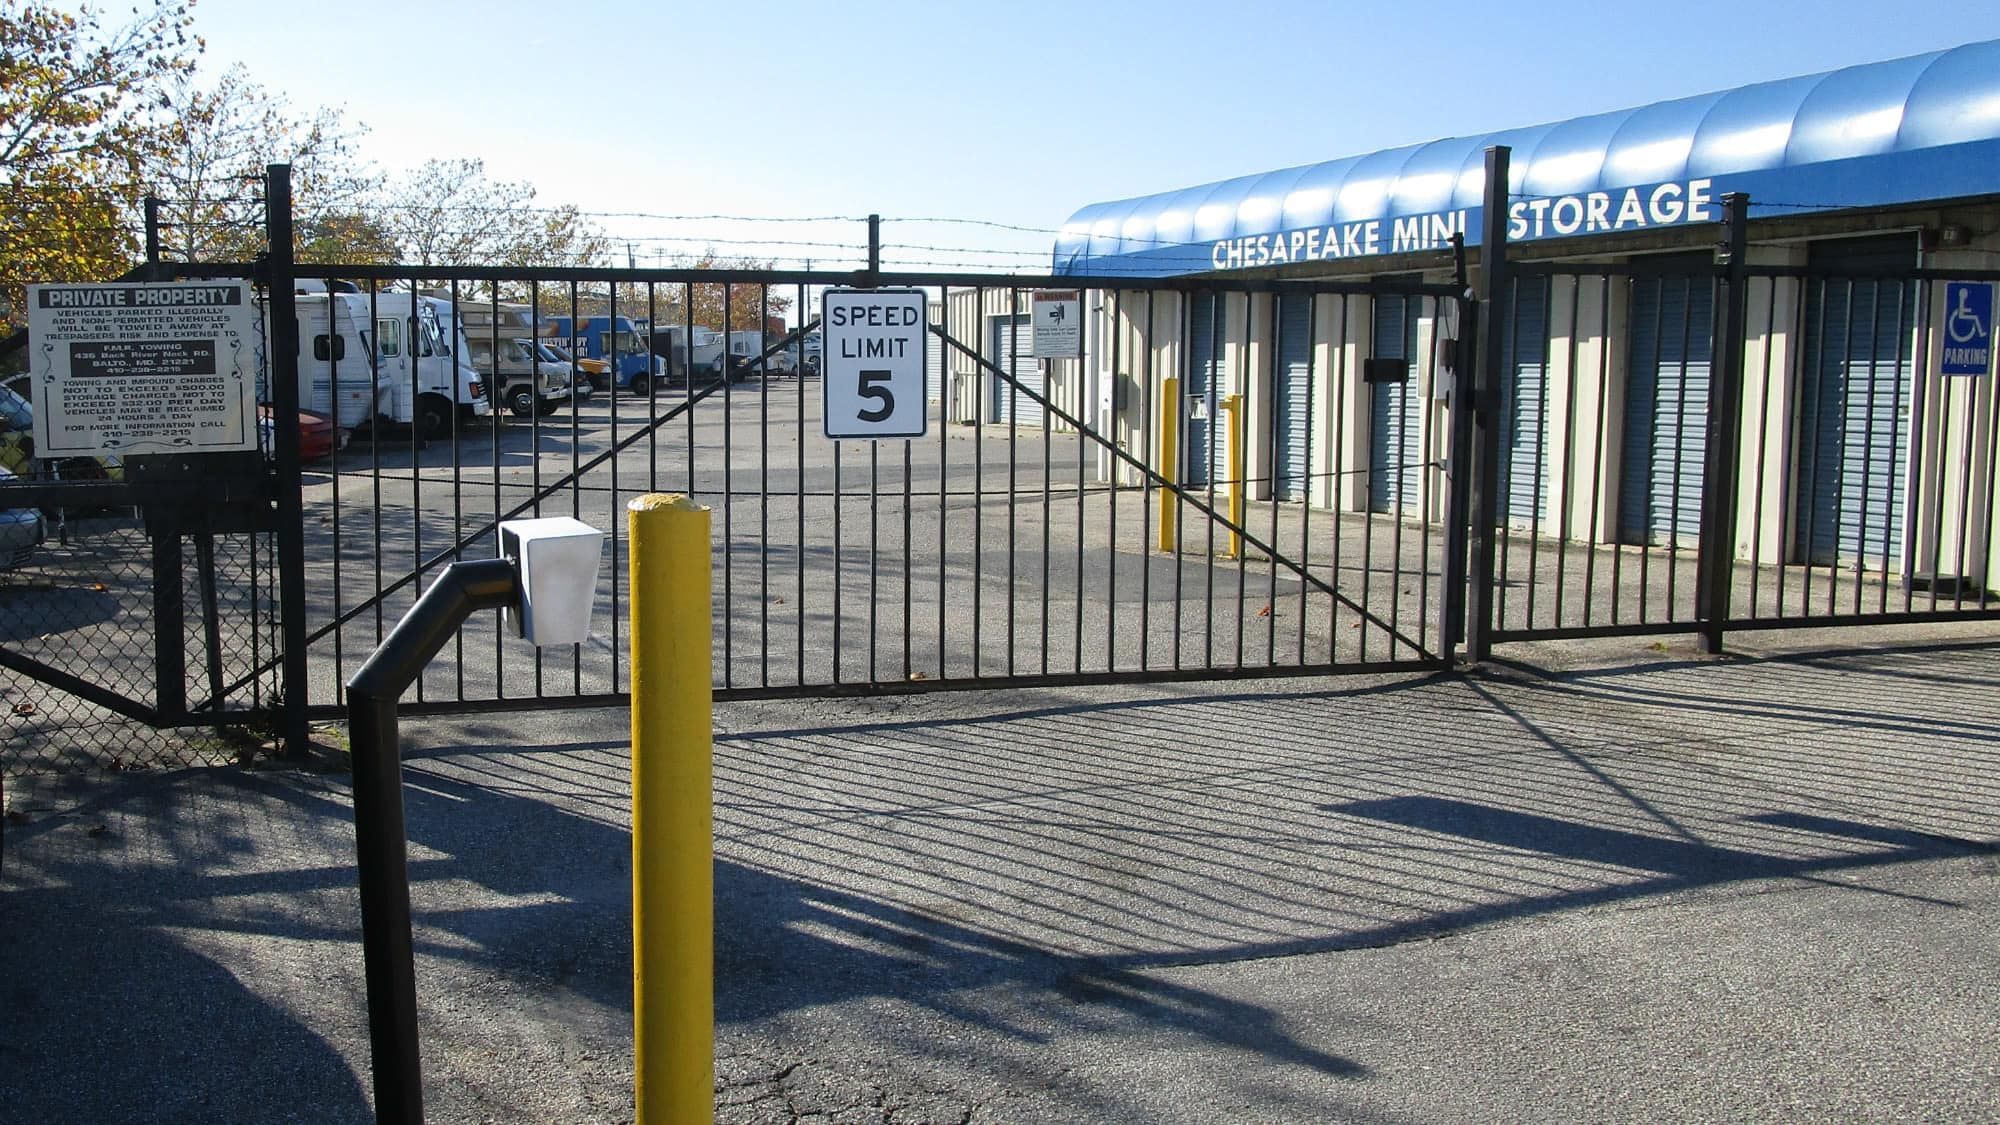 Entrance gate at Self Storage Plus in Middle River, Maryland